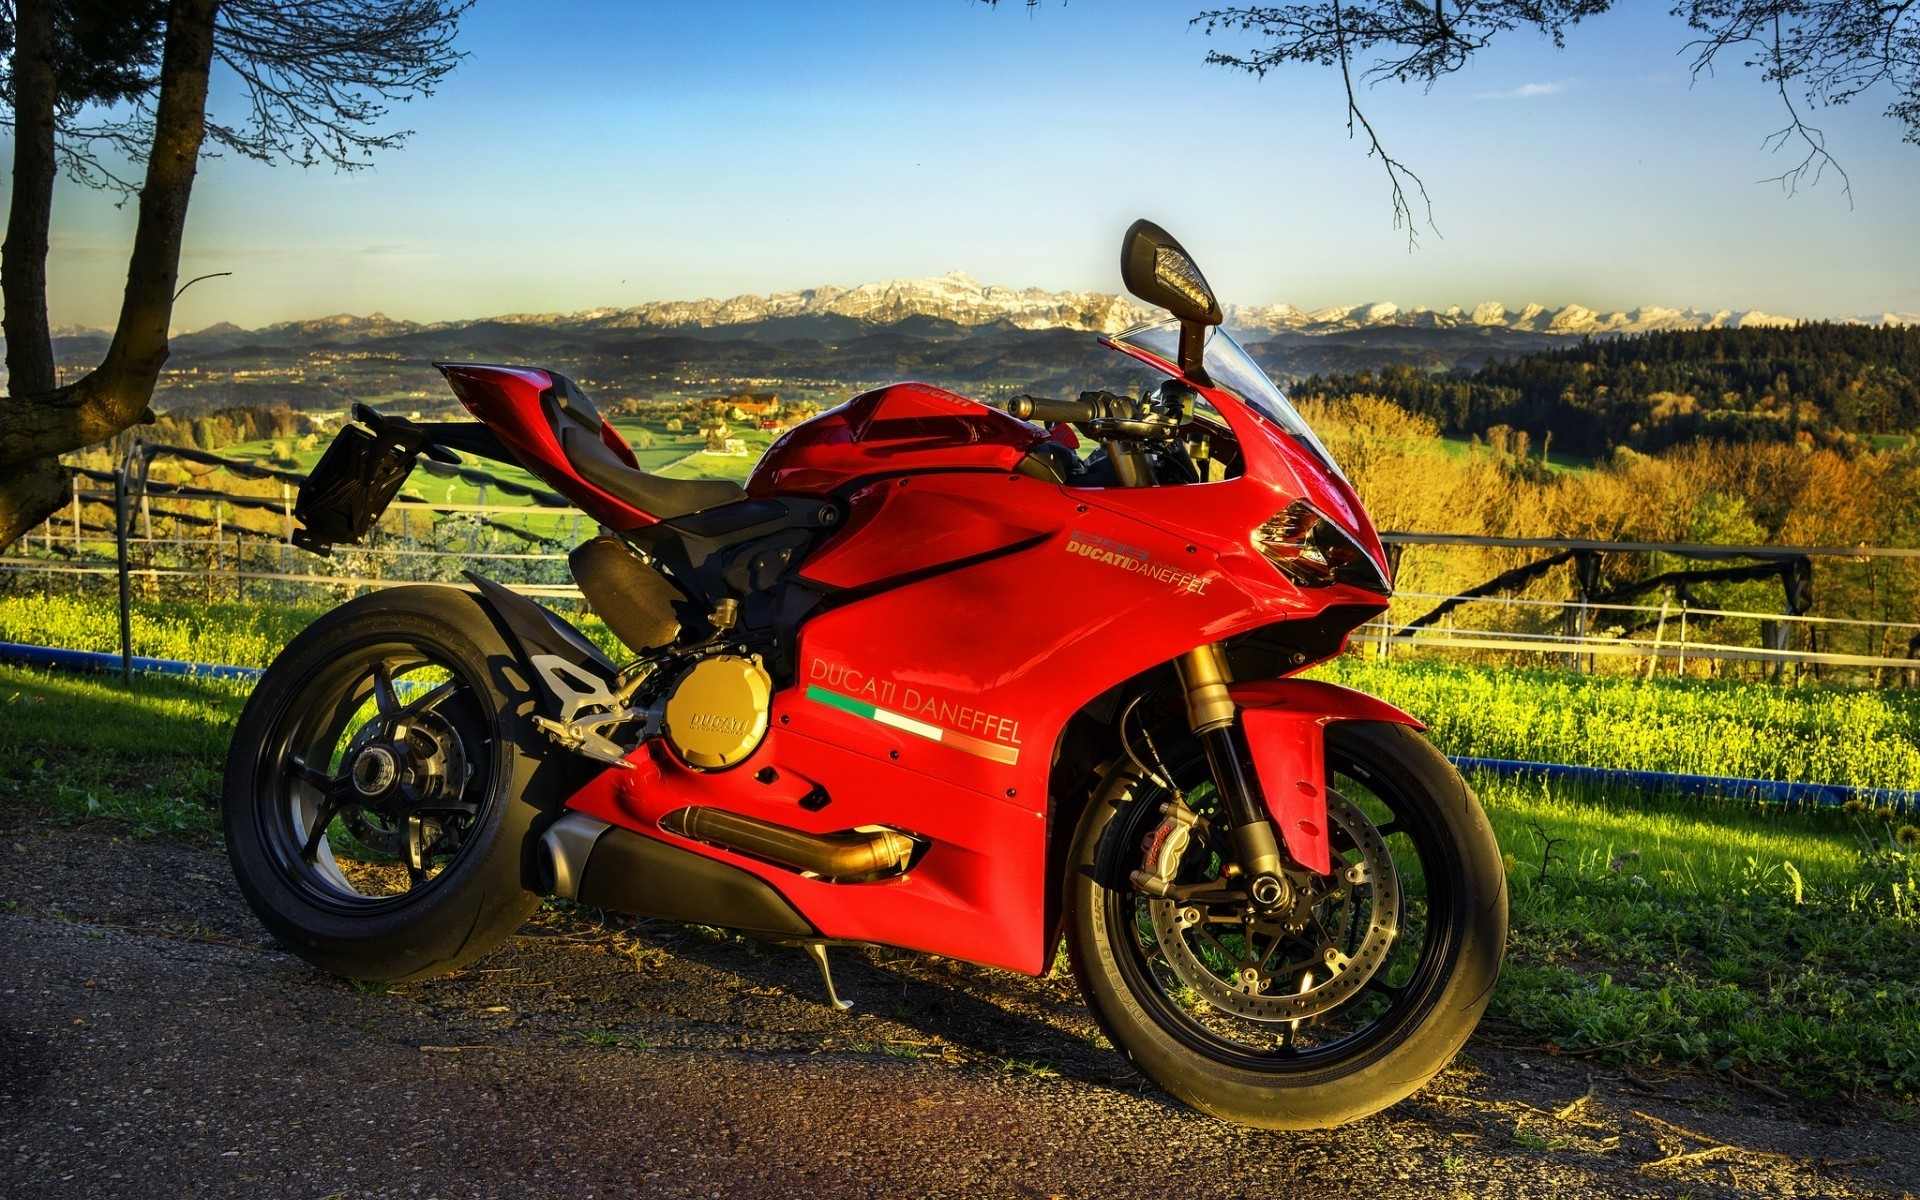 Stunning Red Ducati  for 1920 x 1200 widescreen resolution